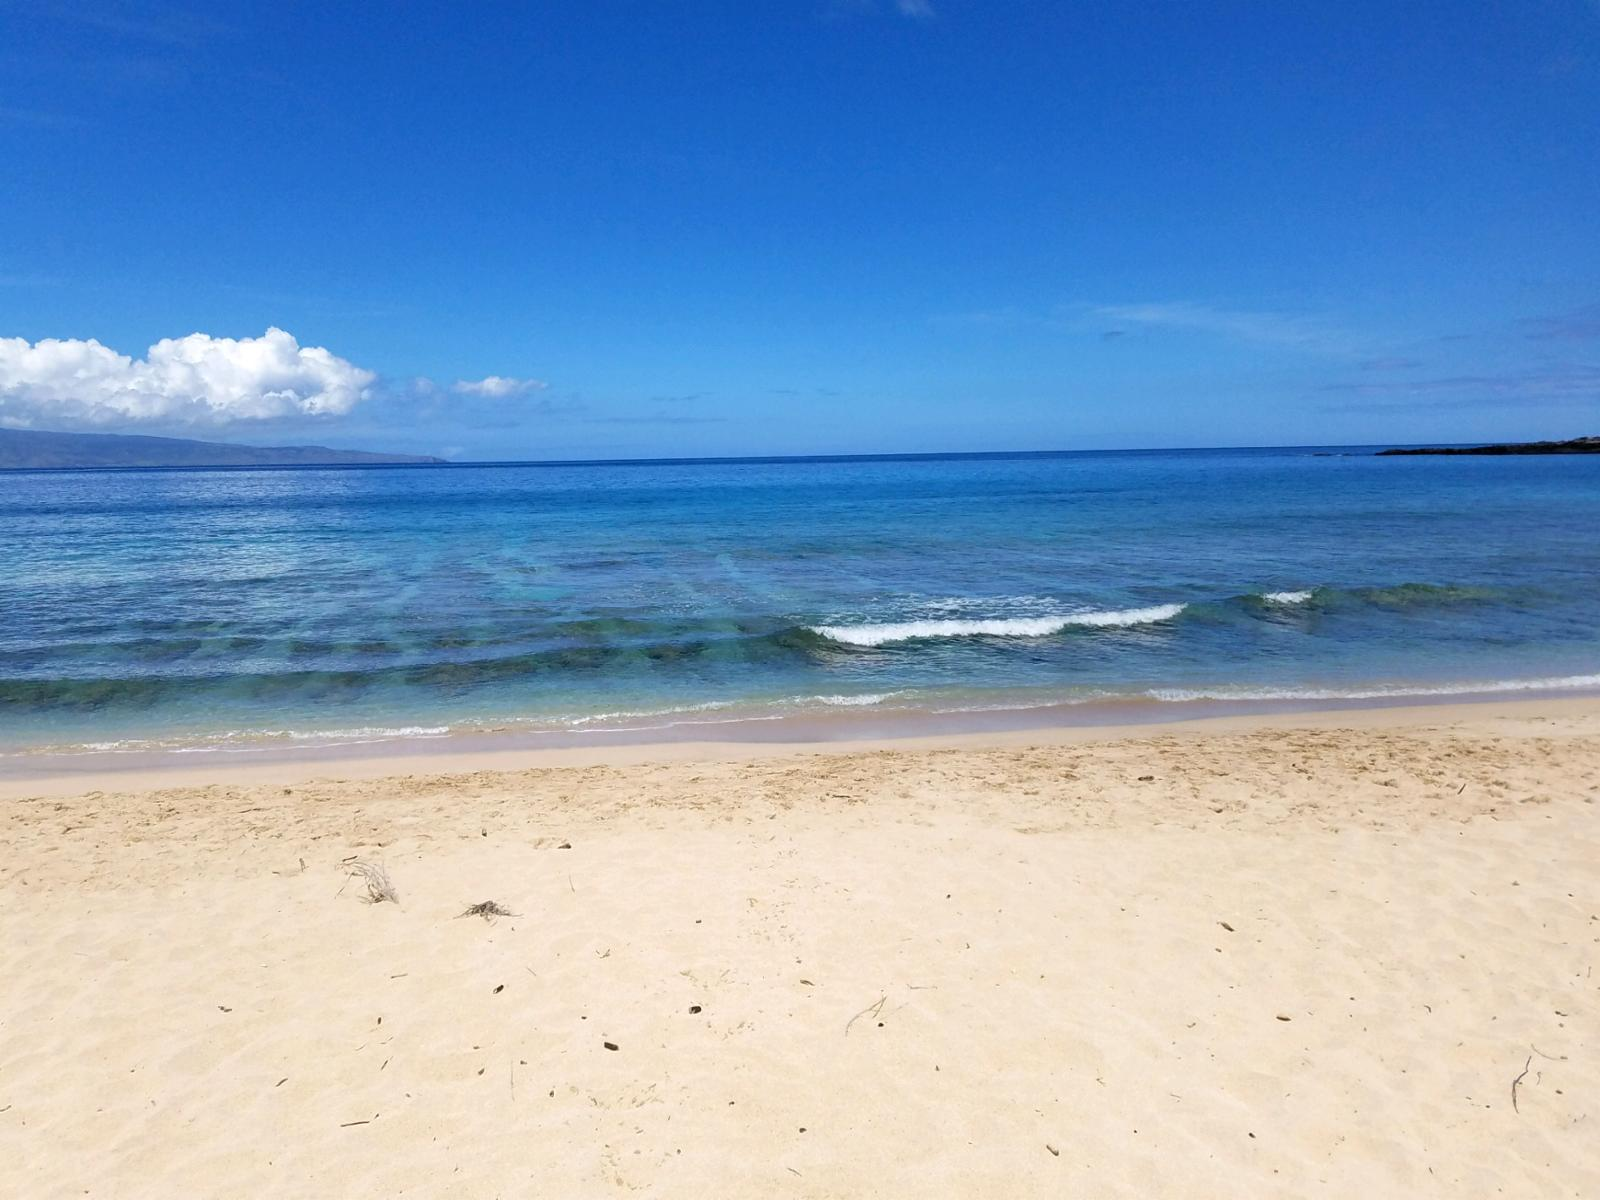 Kapalua Bay is perfect to catch some vitamin sea!